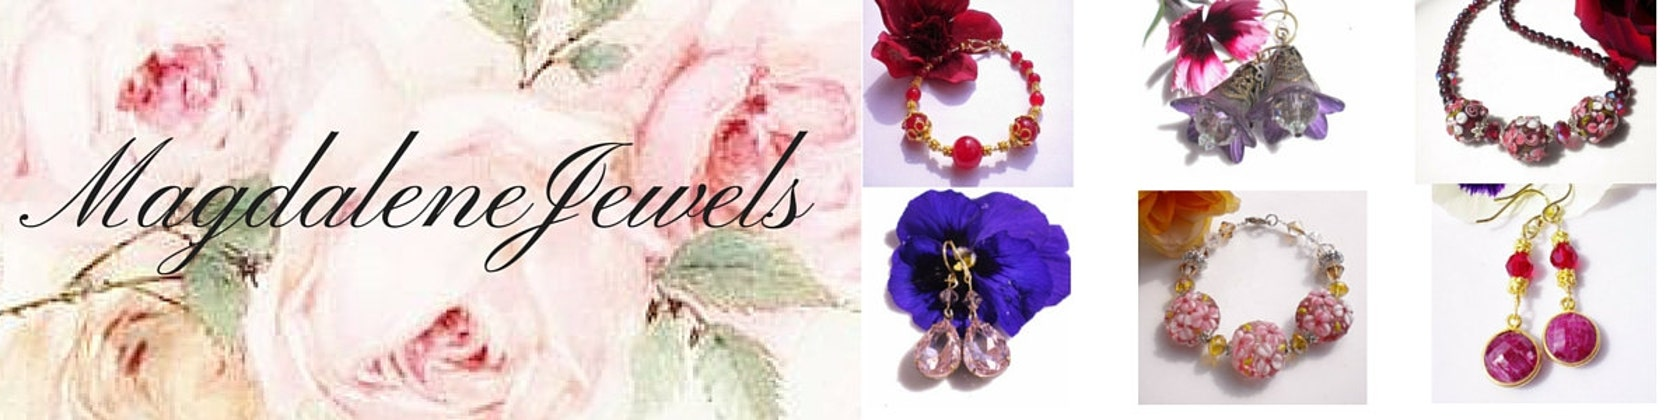 Magdalene Jewels Handmade Jewelry for All Occasions